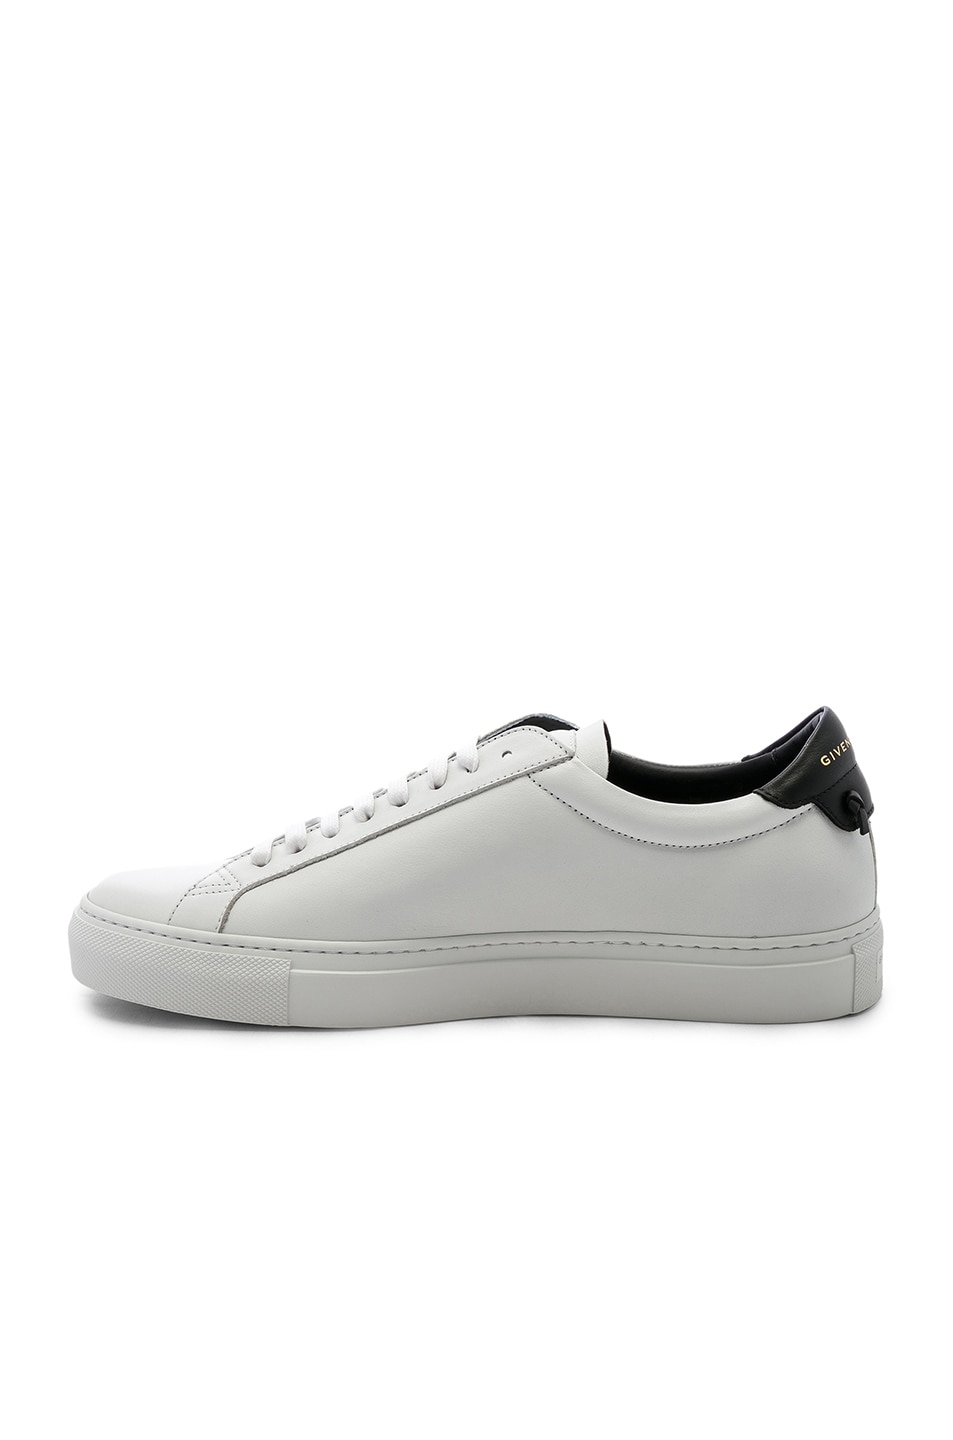 c6fdd7651 Image 5 of Givenchy Urban Street Perforated Sneakers in White & Black